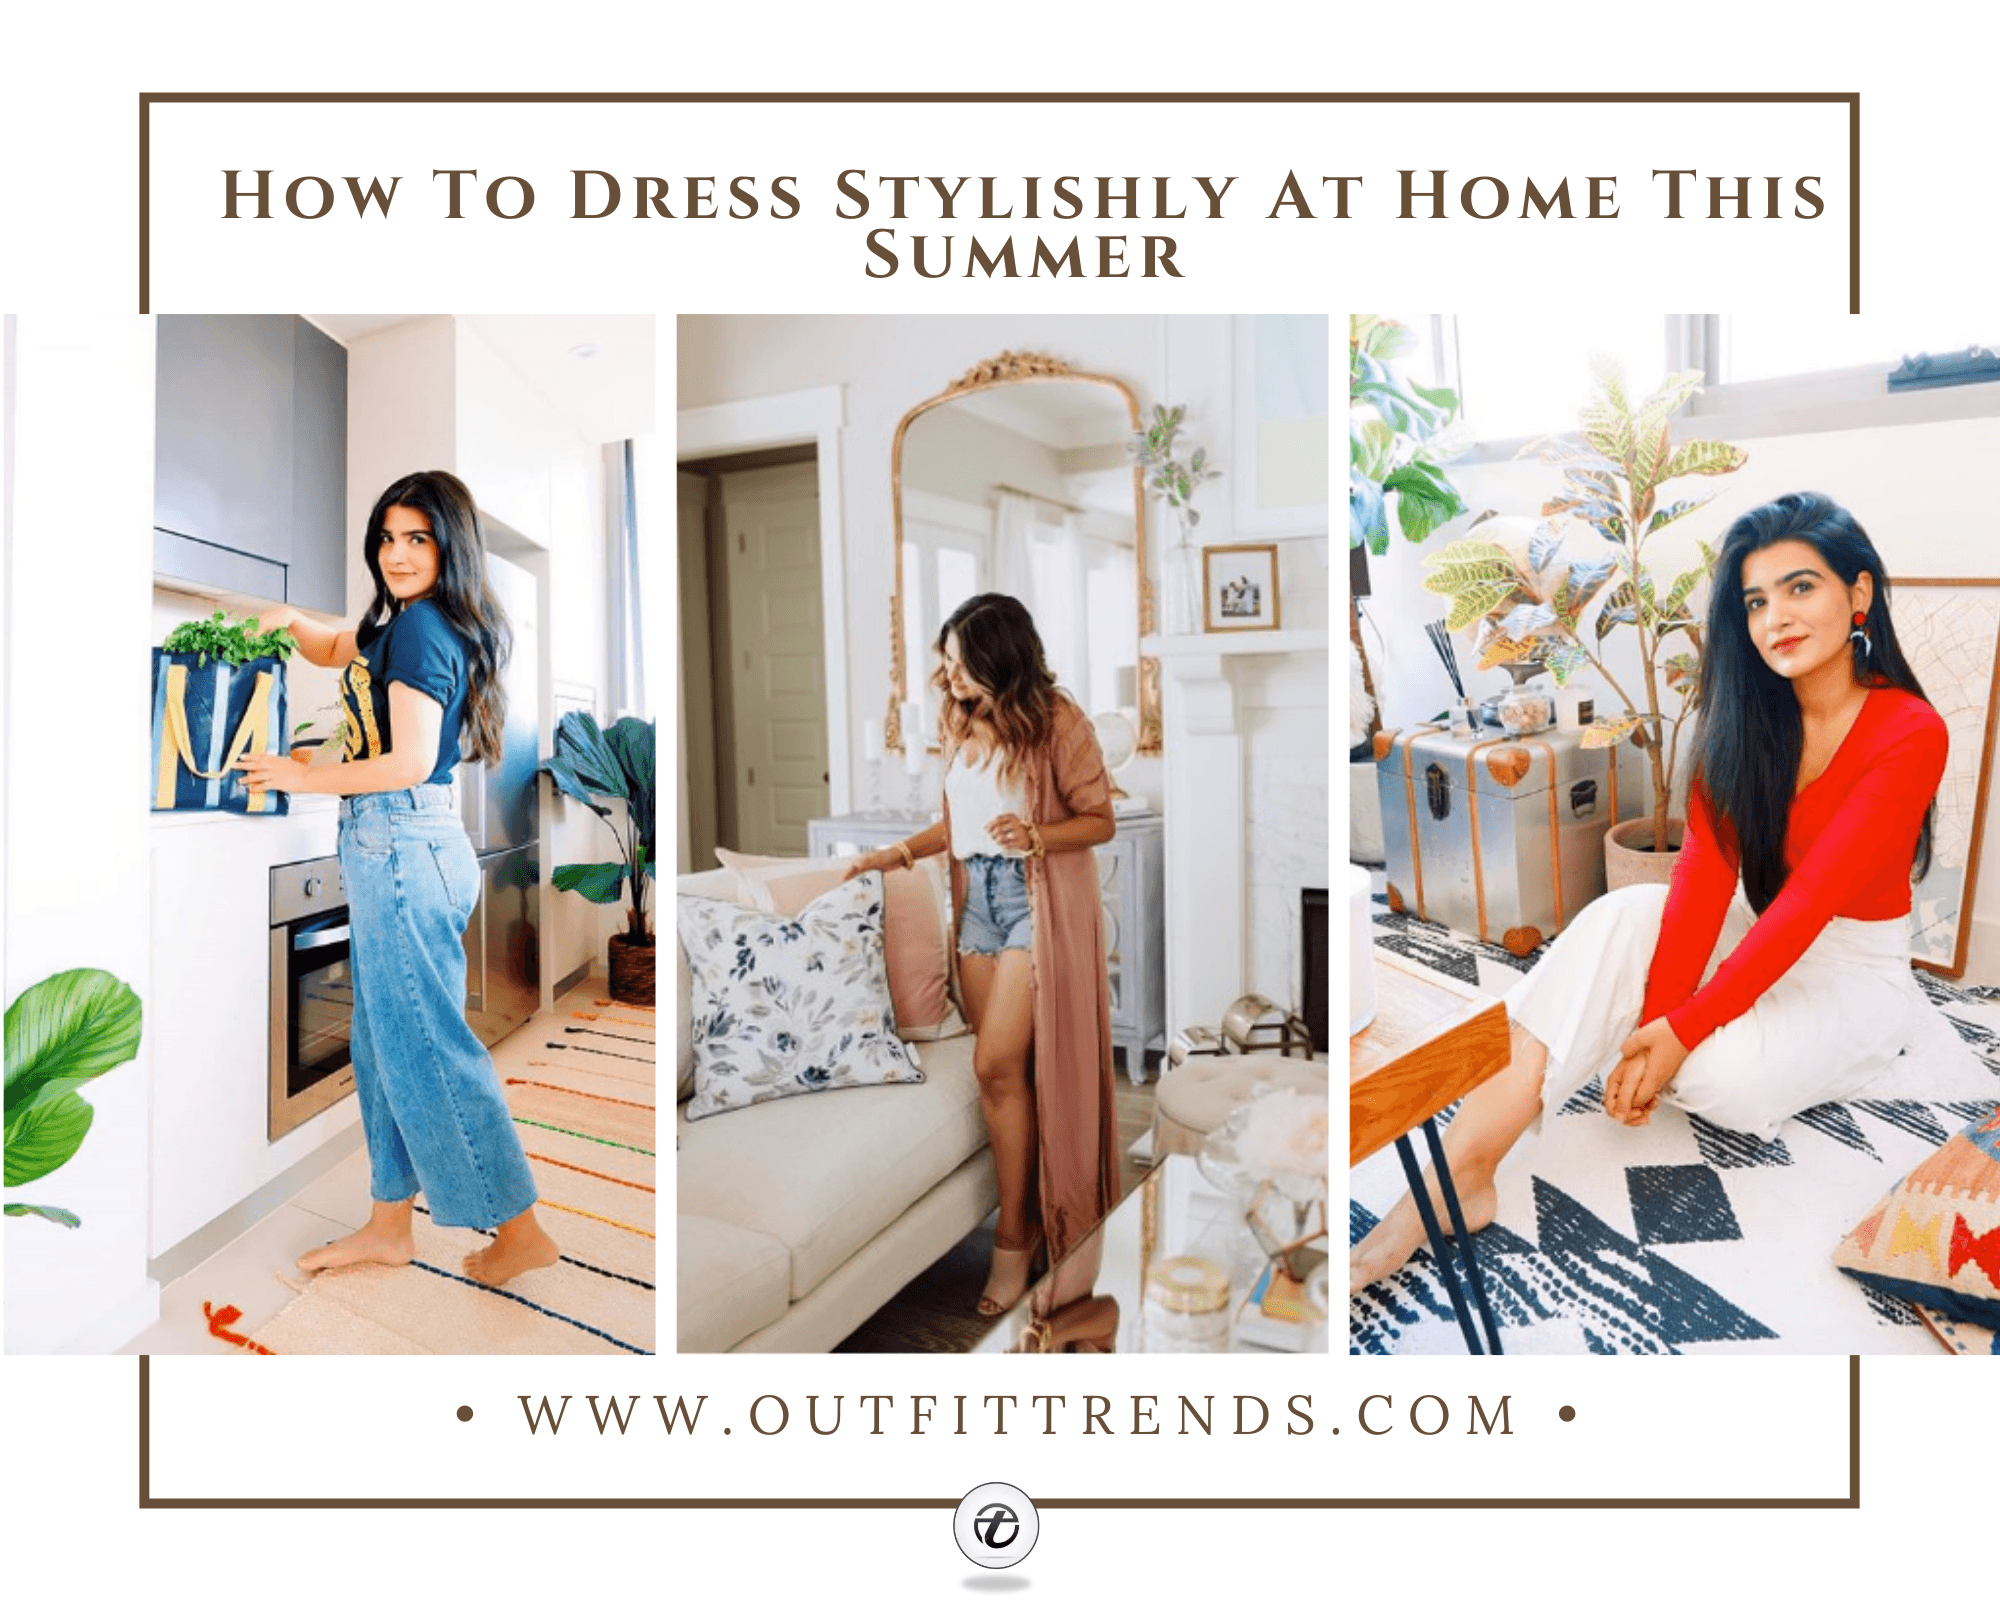 Girls Summer Home Wear21 Best Ideas on What to Wear at Home